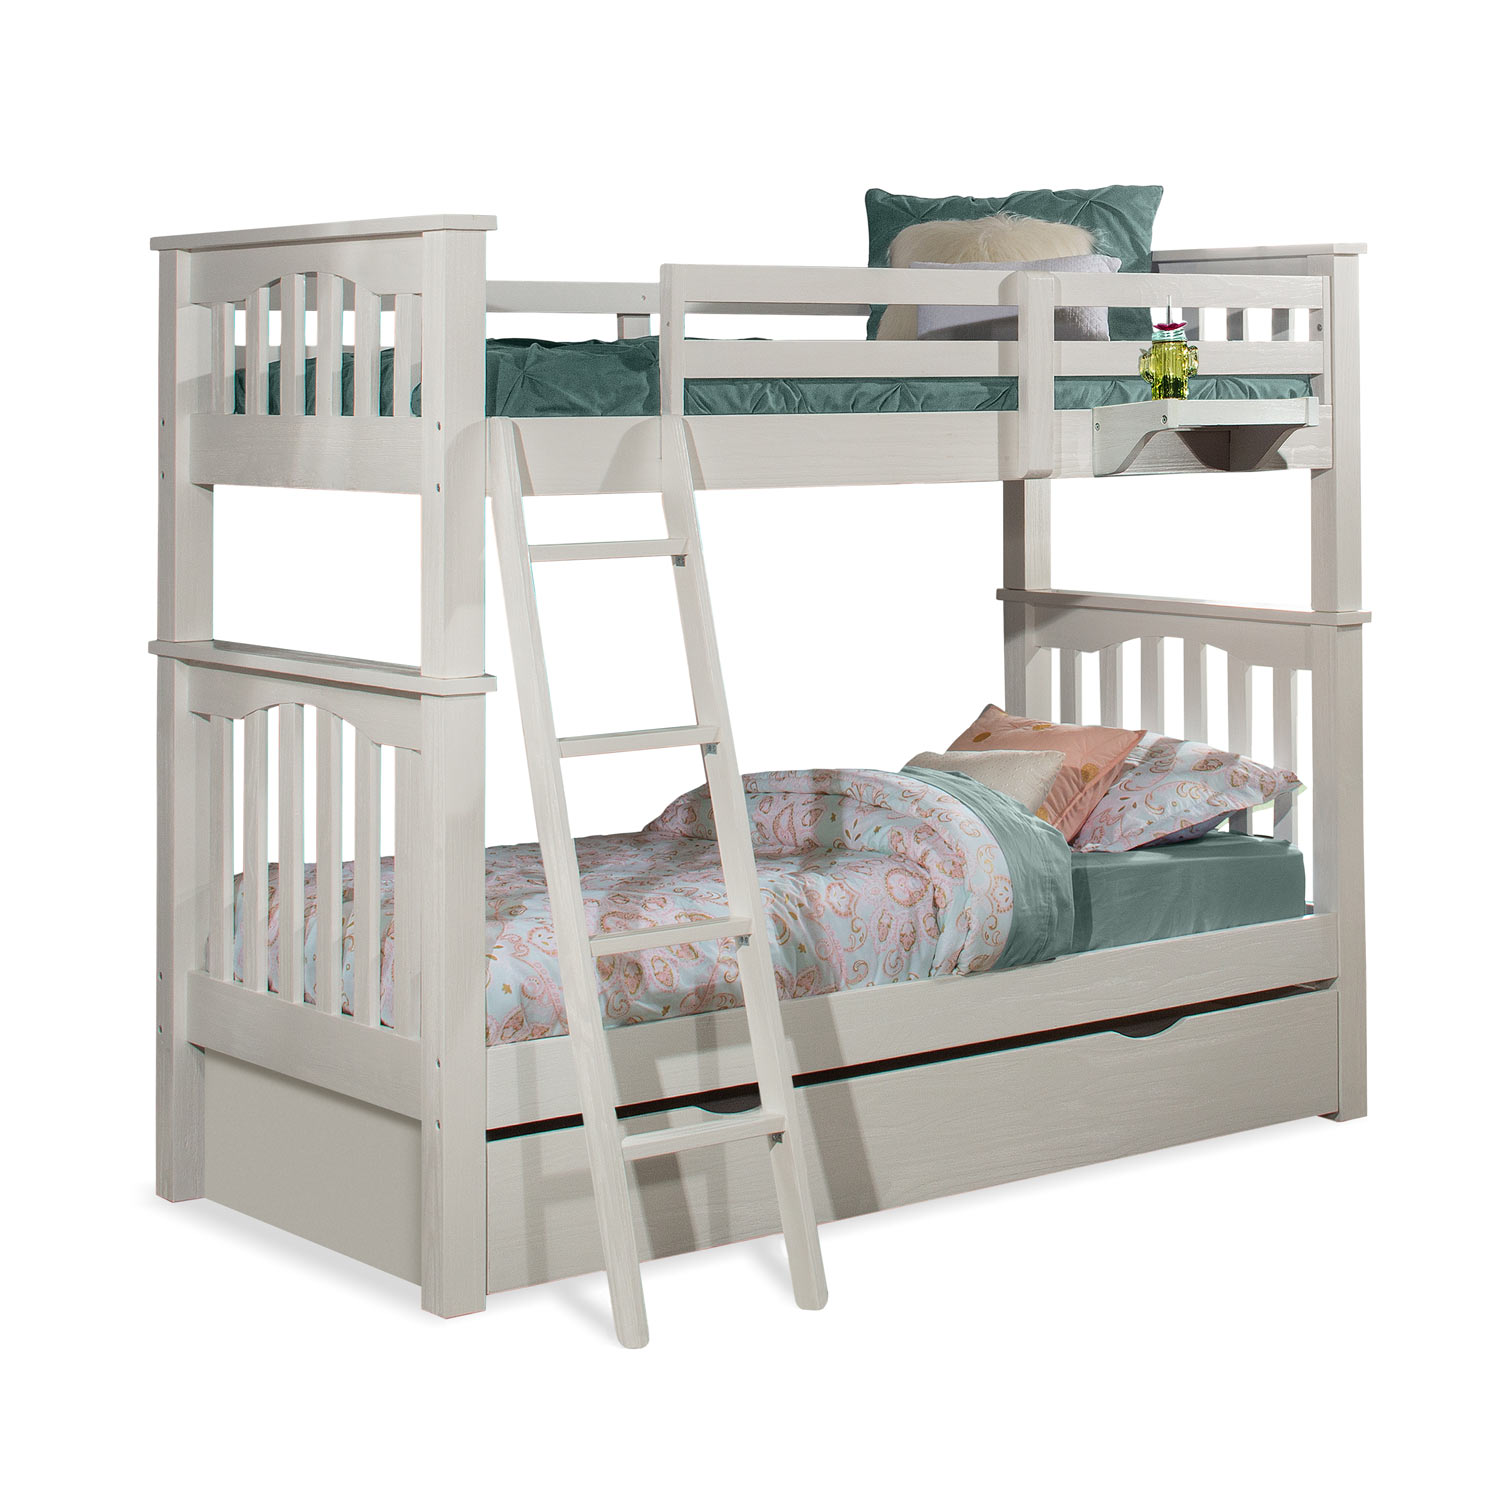 NE Kids Highlands Harper Twin/Twin Bunk Bed with Trundle and Hanging Nightstand - White Finish